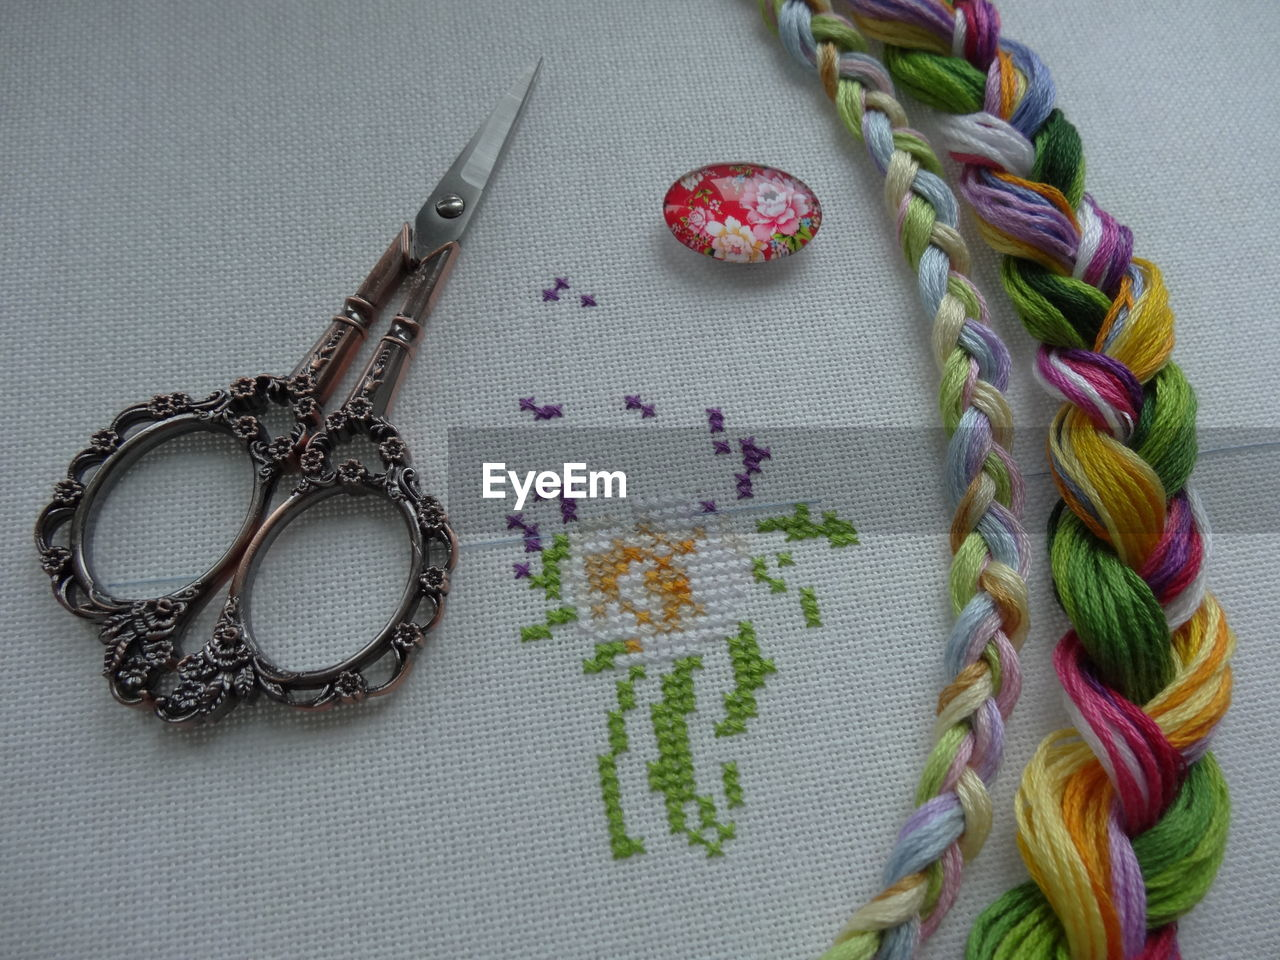 no people, indoors, close-up, still life, high angle view, table, creativity, art and craft, jewelry, directly above, necklace, thread, craft, wool, choice, pattern, variation, textile, flower, bead, personal accessory, purple